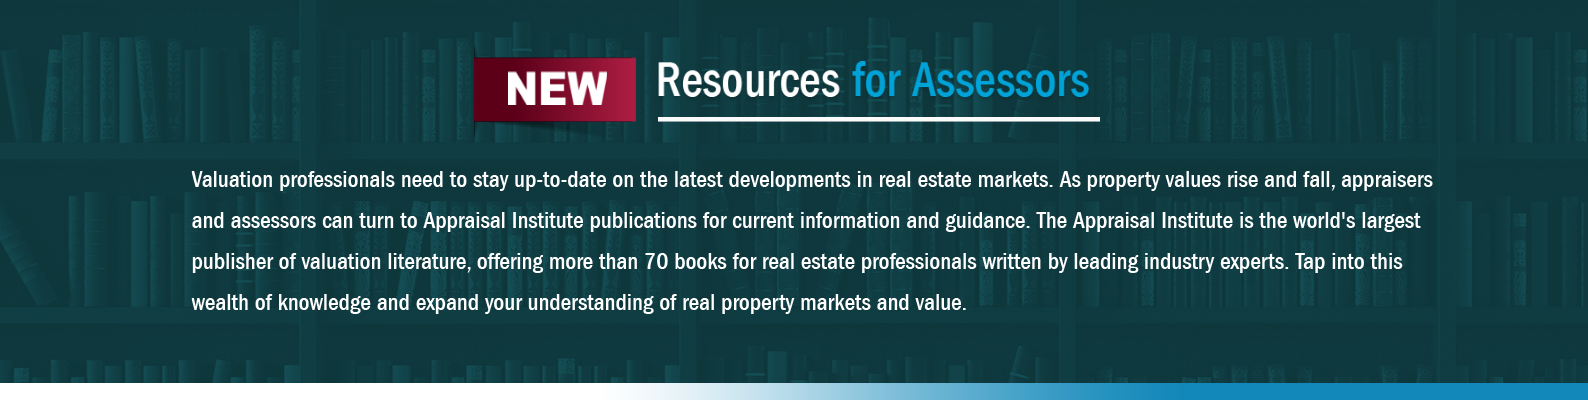 Valuation professionals need to stay up-to-date on the latest developments in real estate markets. As property values rise and fall, assessors can turn to Appraisal Institute publications for current information and guidance. The Appraisal Institute is the world's largest publisher of valuation literature, offering more than 70 books for real estate professionals written by leading industry experts. Tap into this wealth of knowledge and expand your understanding of real property markets and value